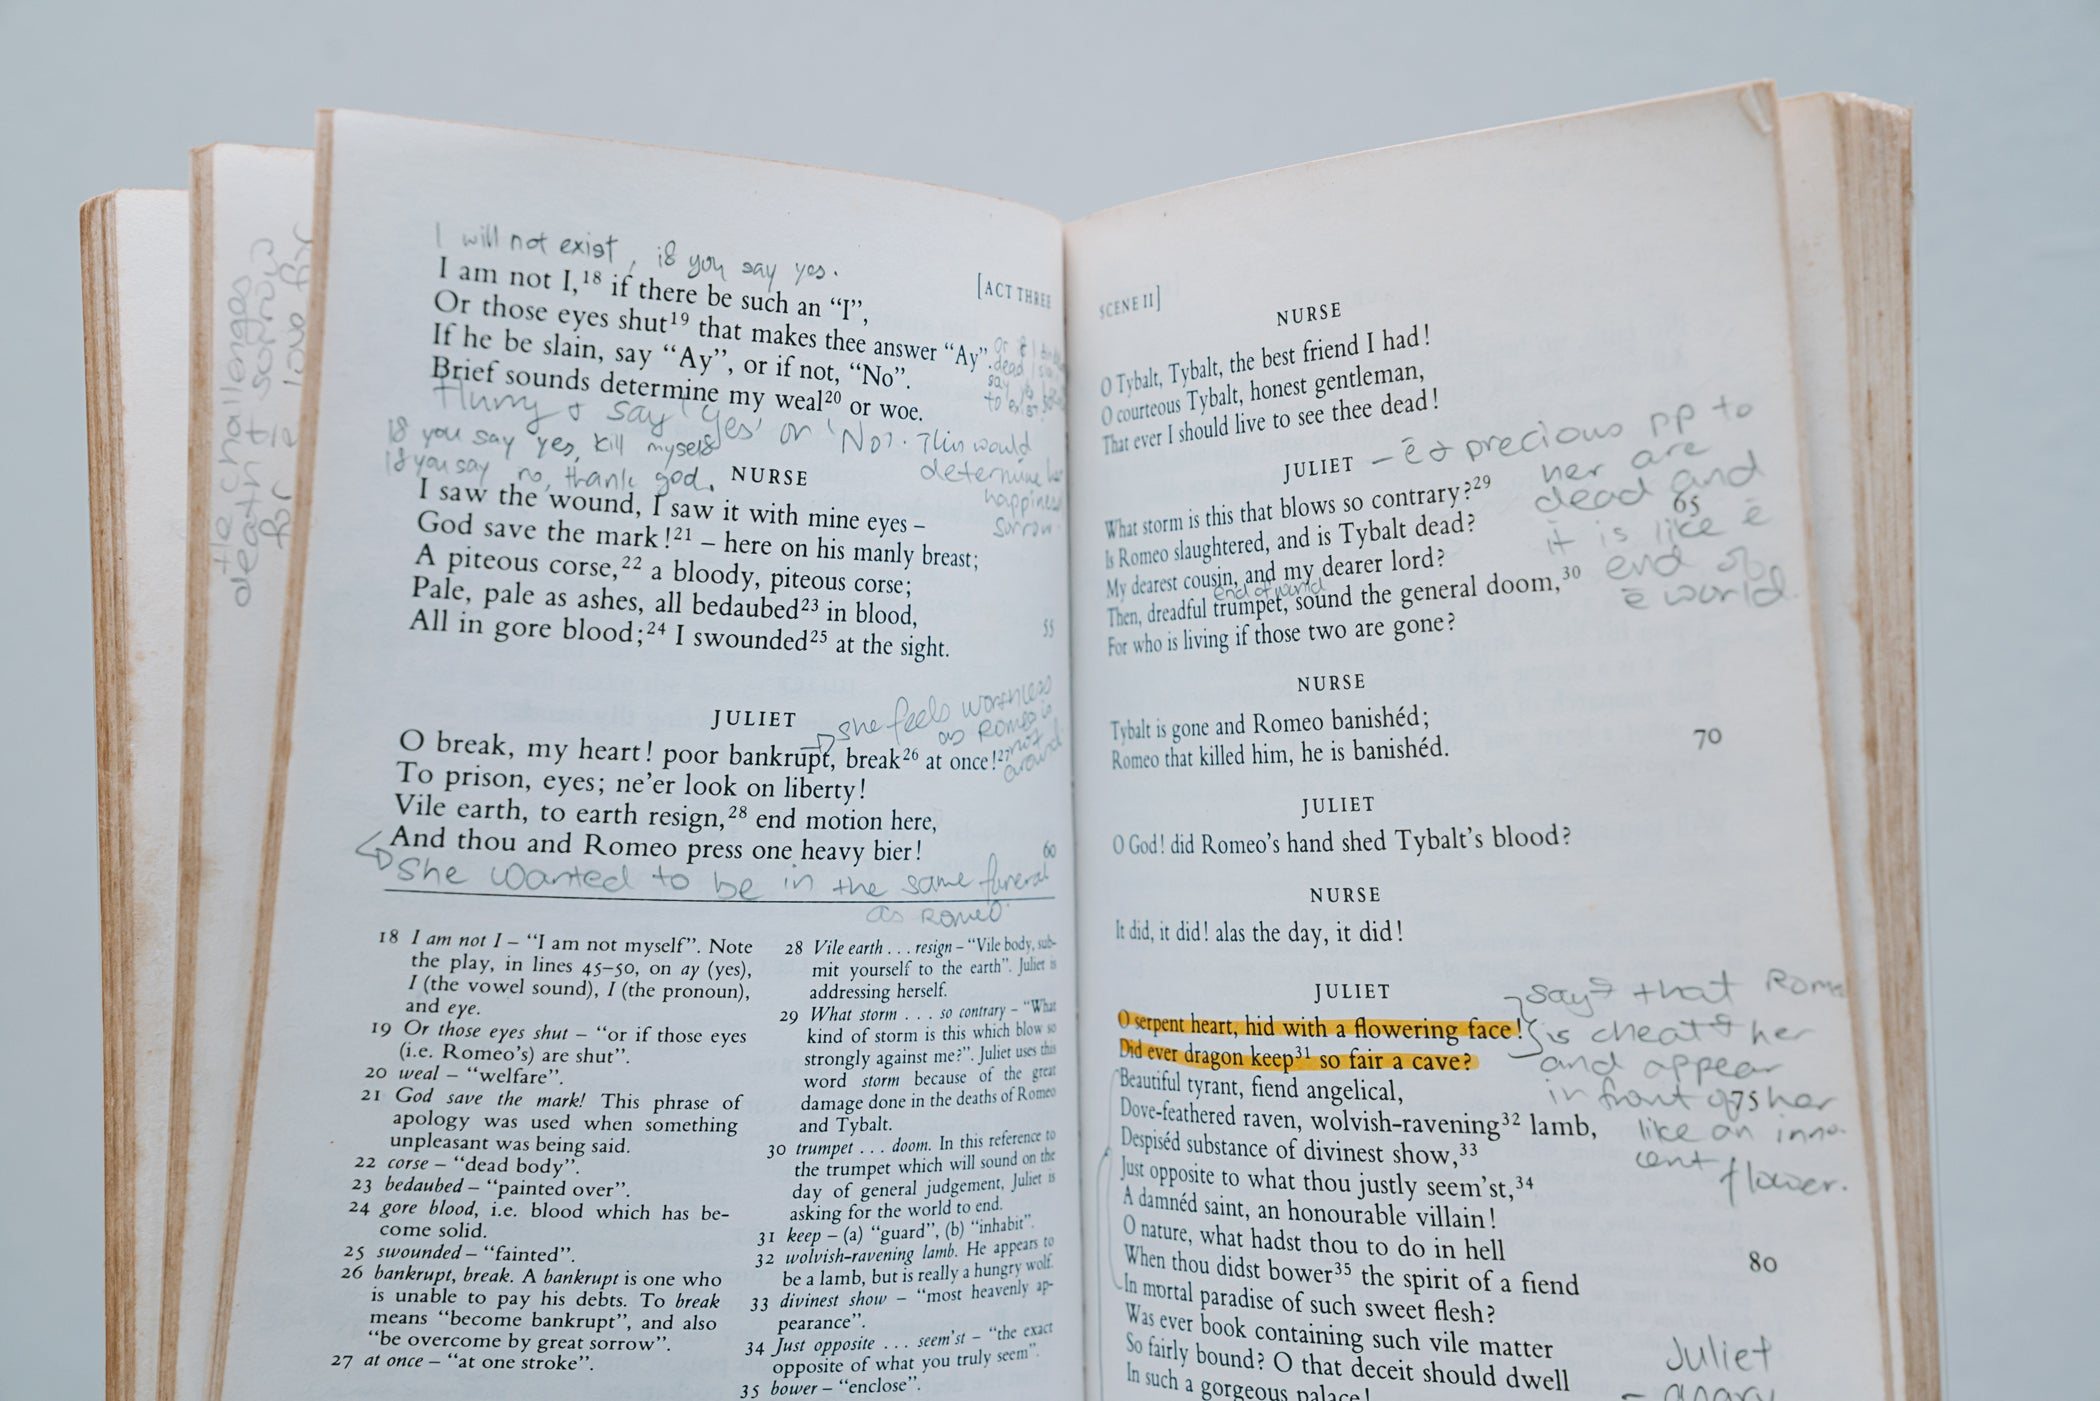 Pages of book in Well Read condition